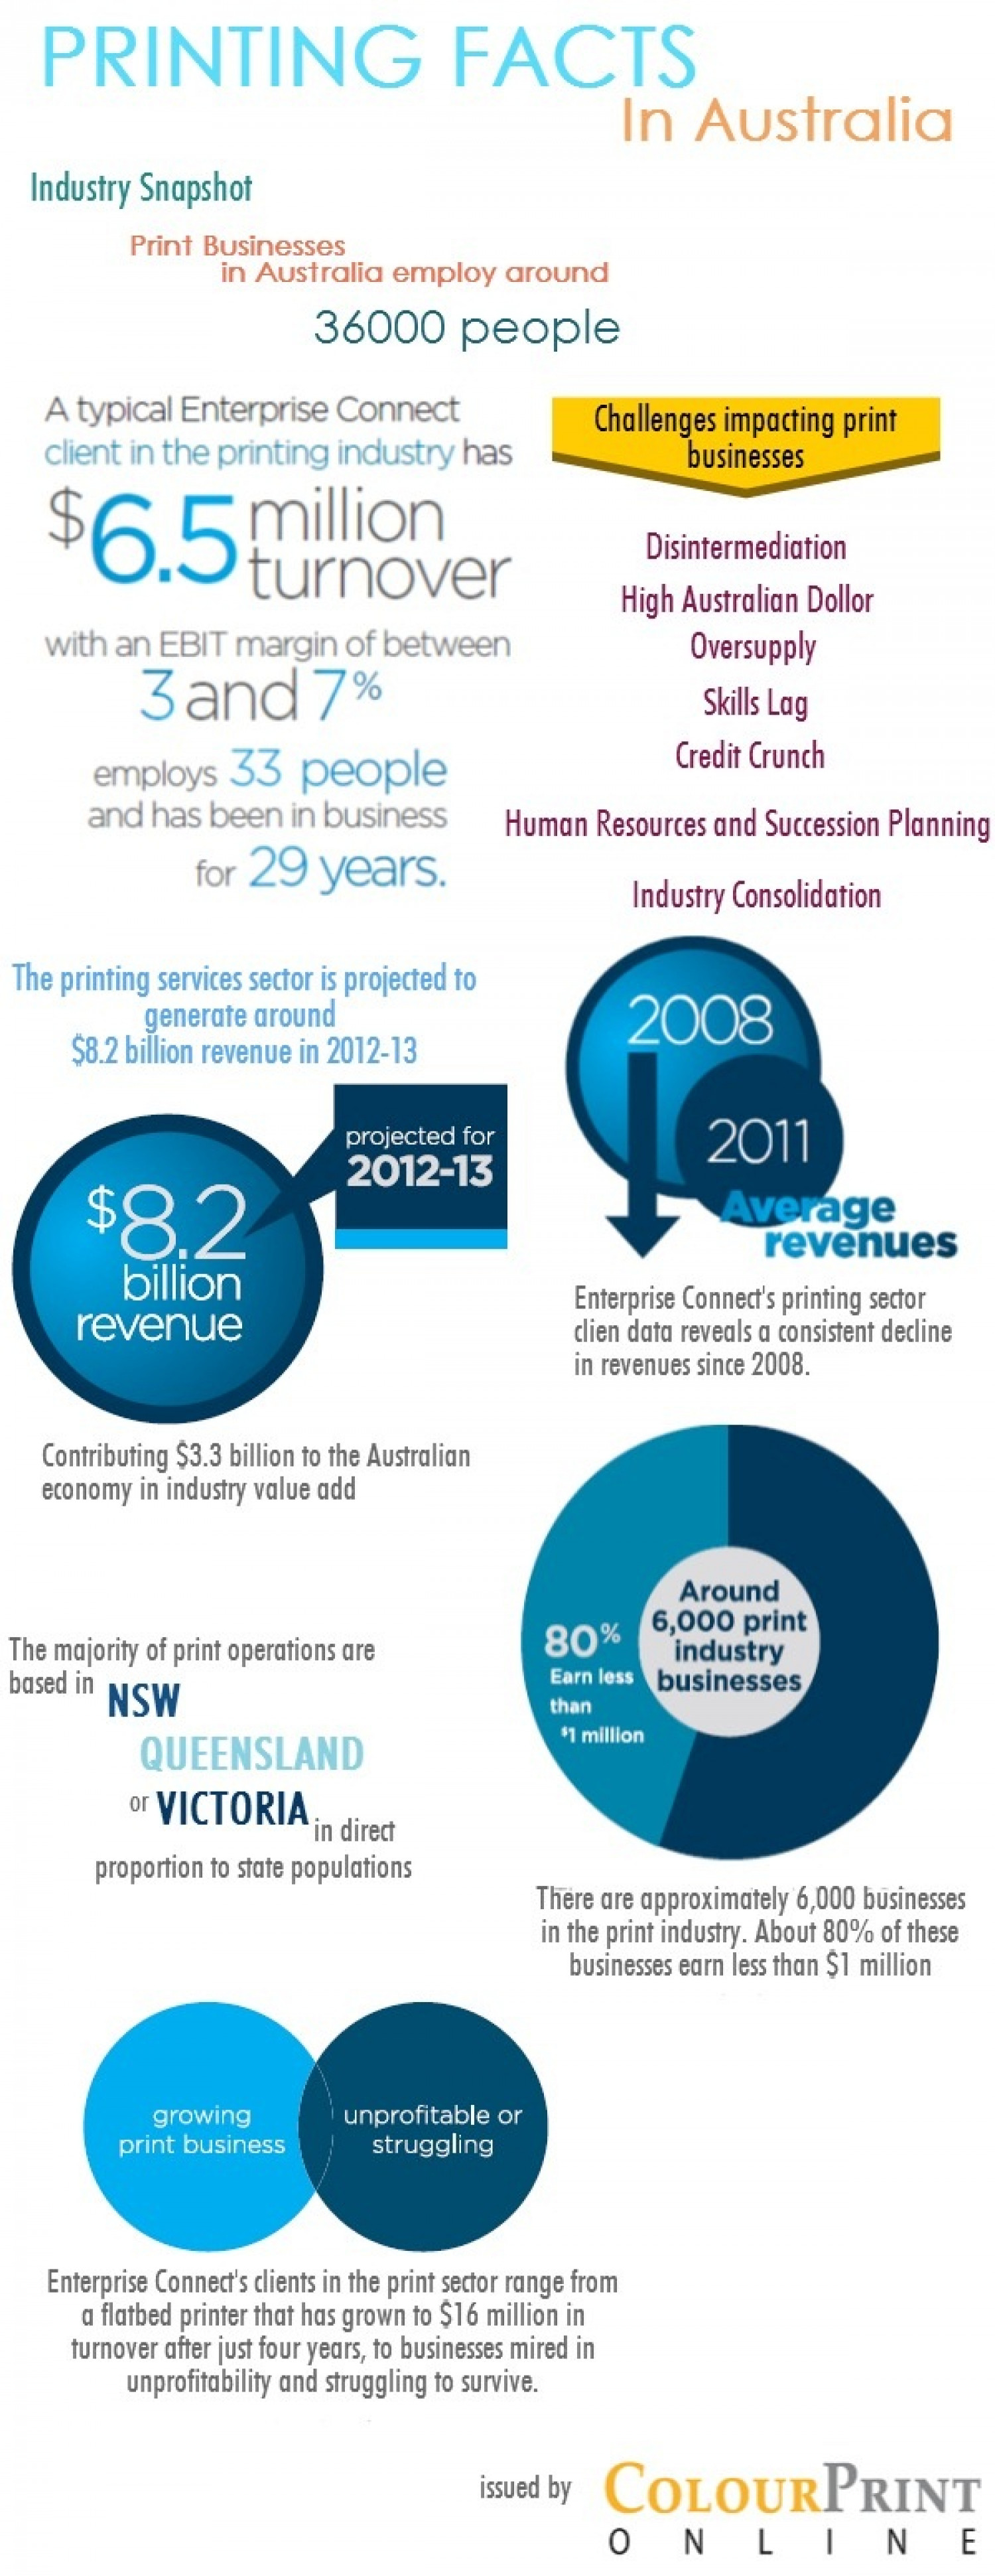 Printing Facts in Australia Infographic